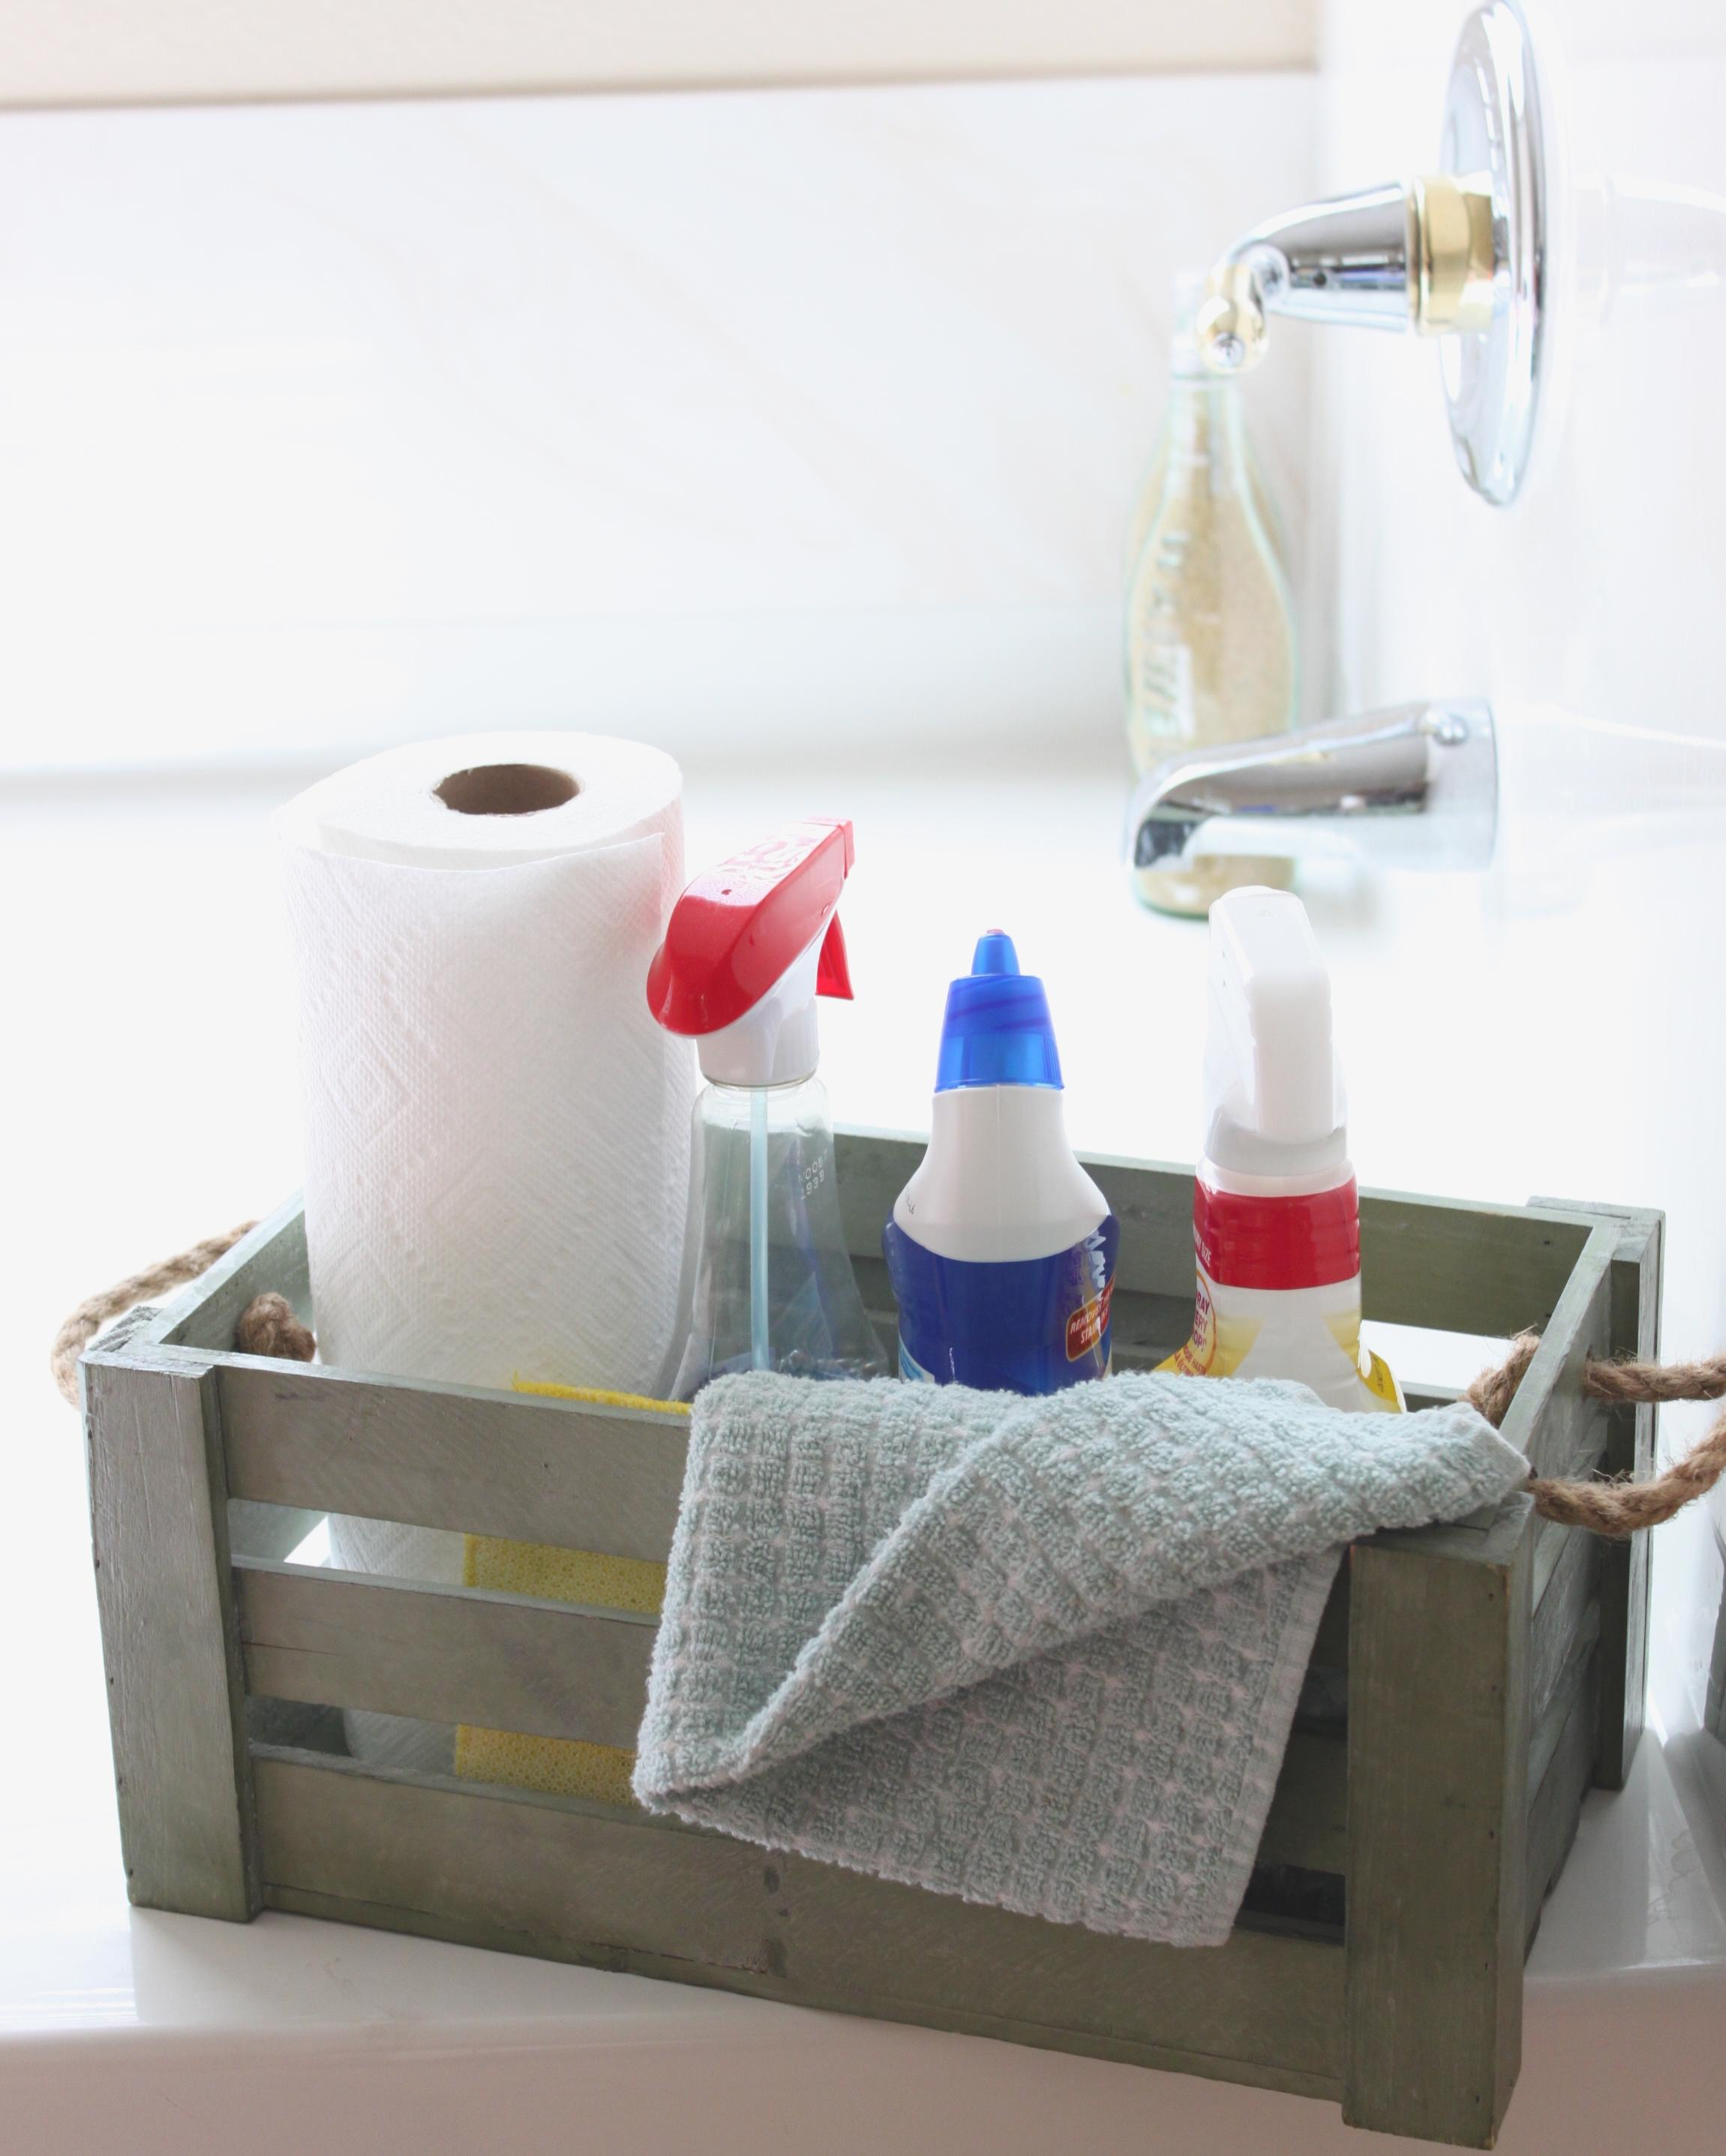 Individual bathroom cleaning supplies